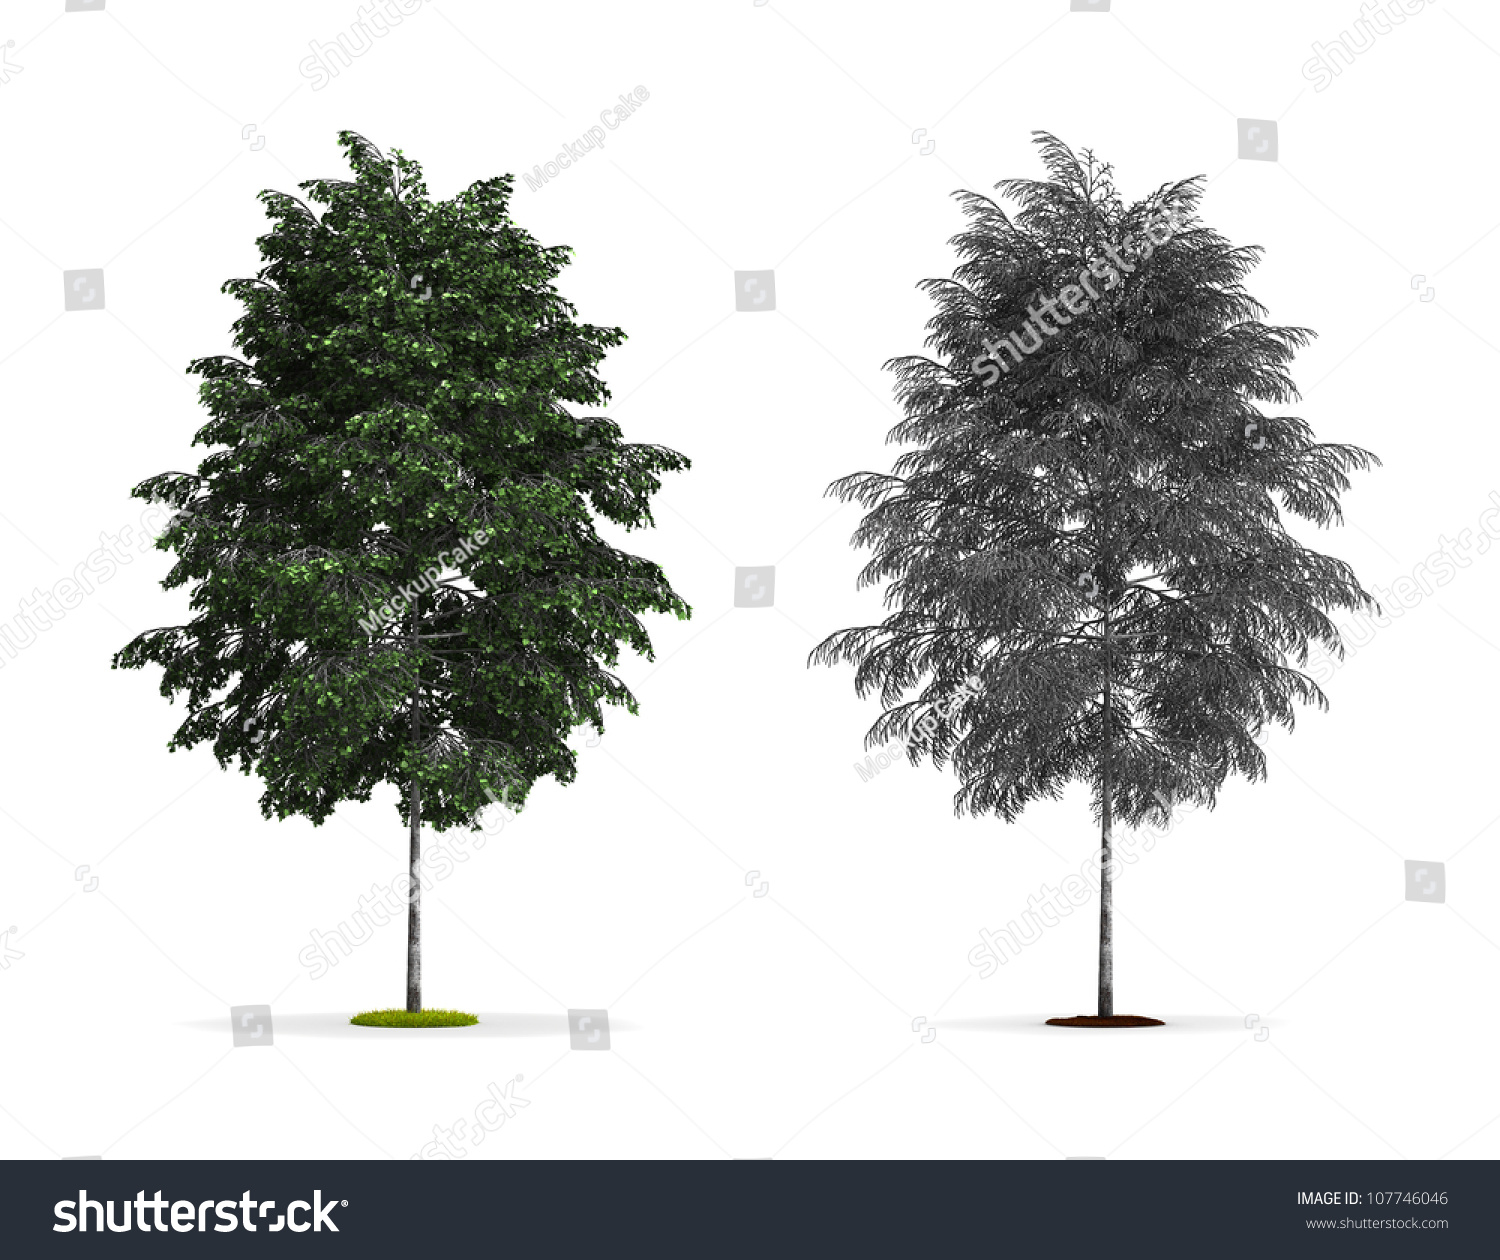 hight resolution of pics for gt silver birch tree red birch tree types of birch trees